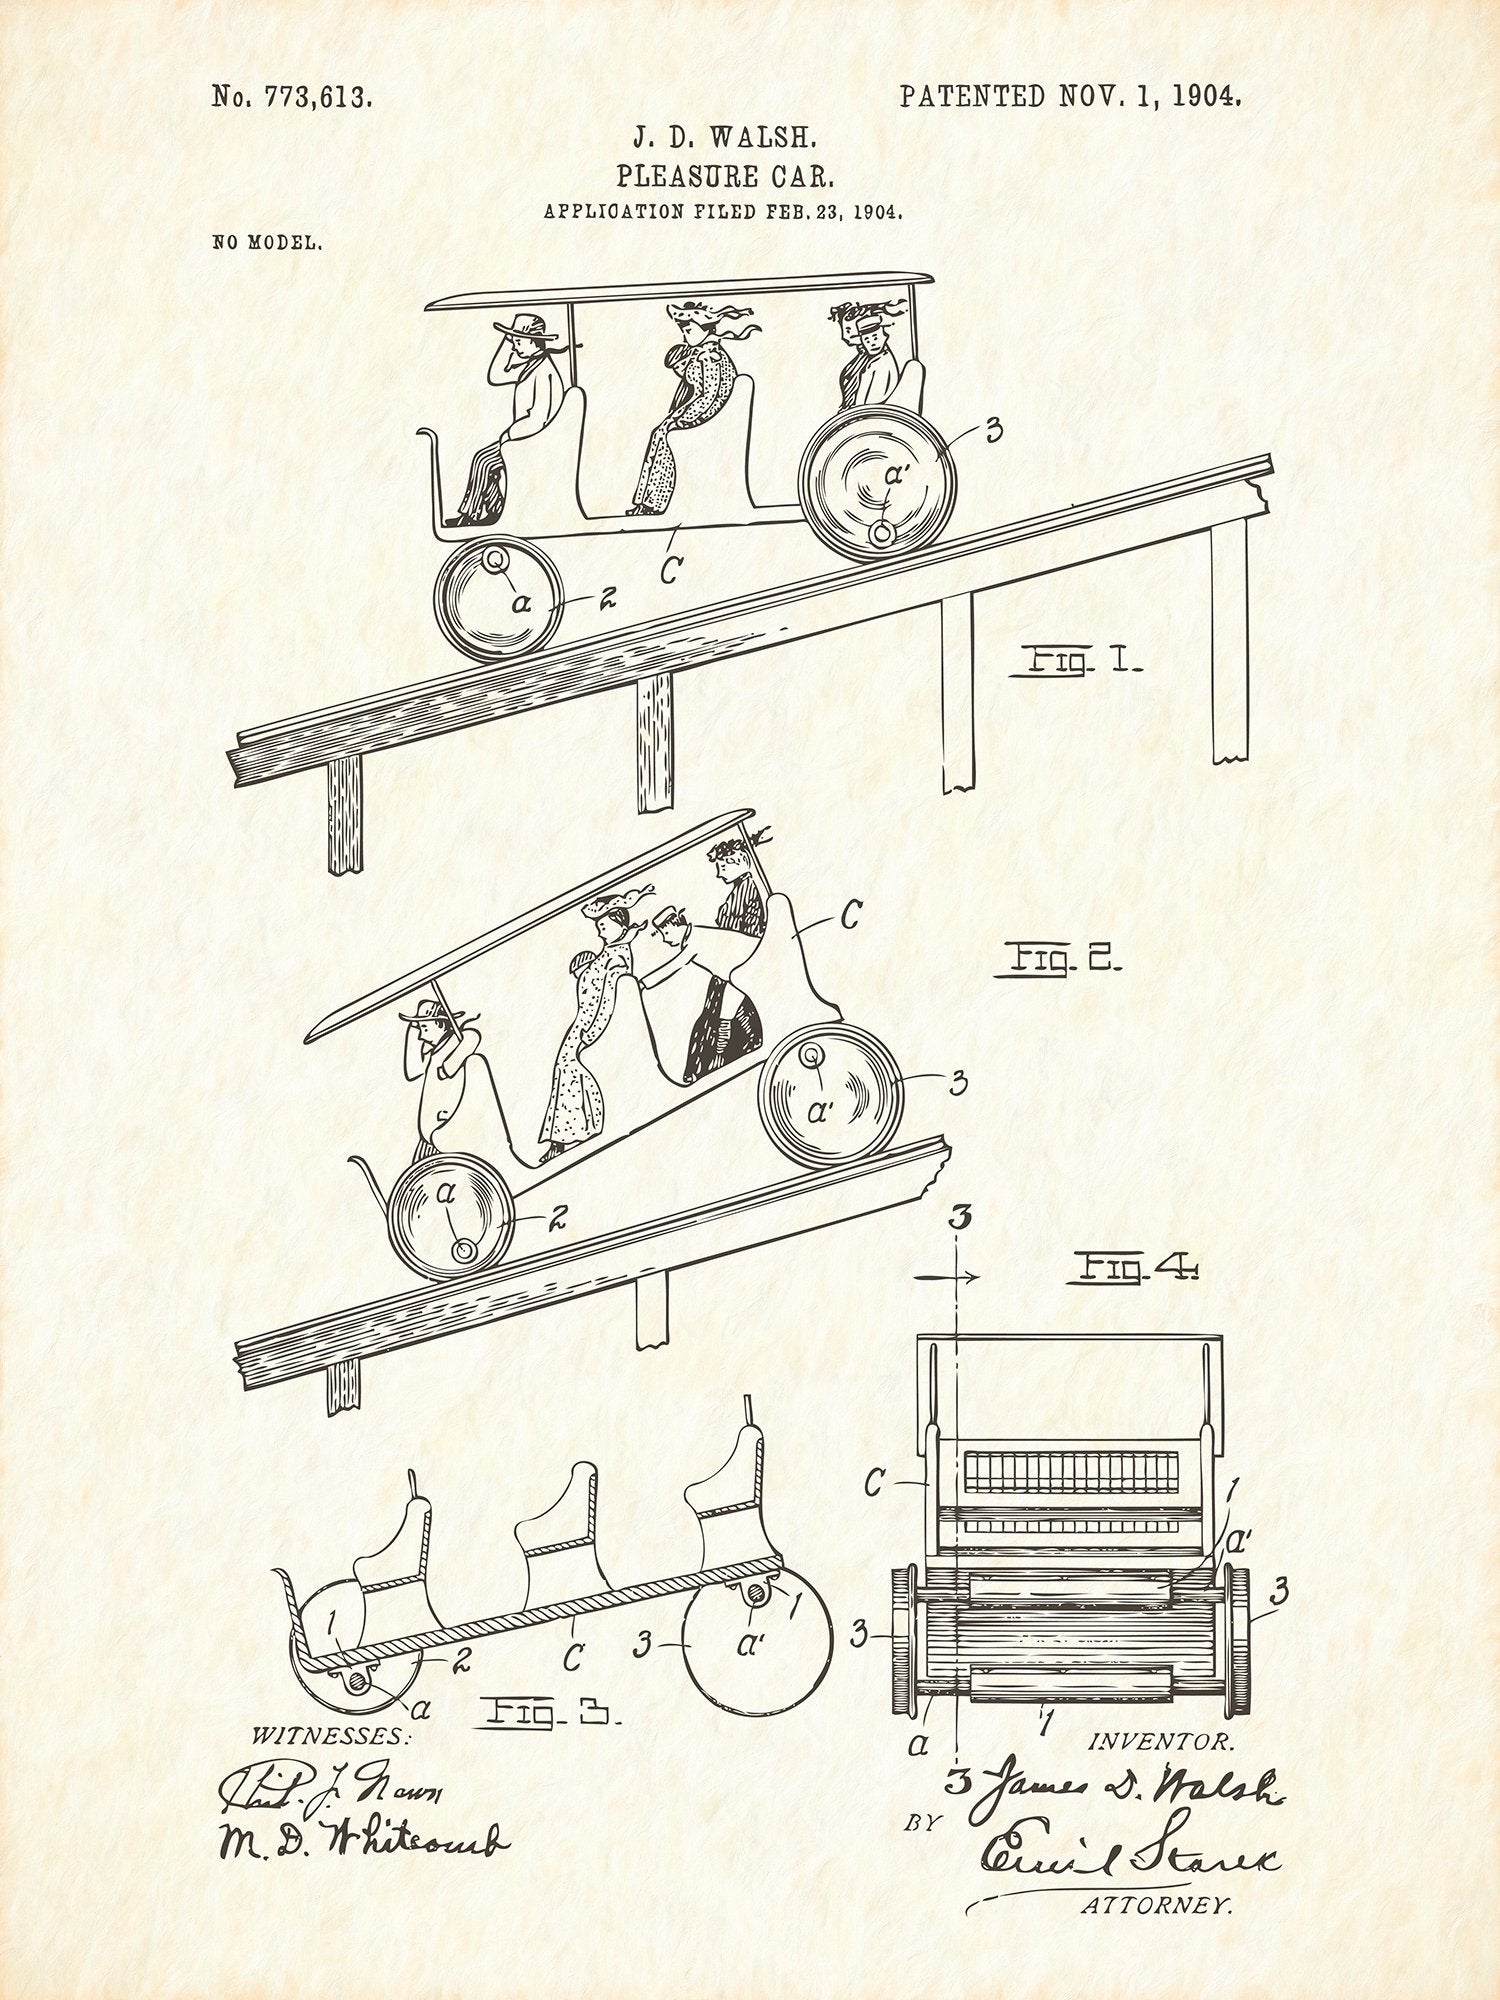 U.S. Patent No. 773613-1 Pleasure Car Reworked, Series 1